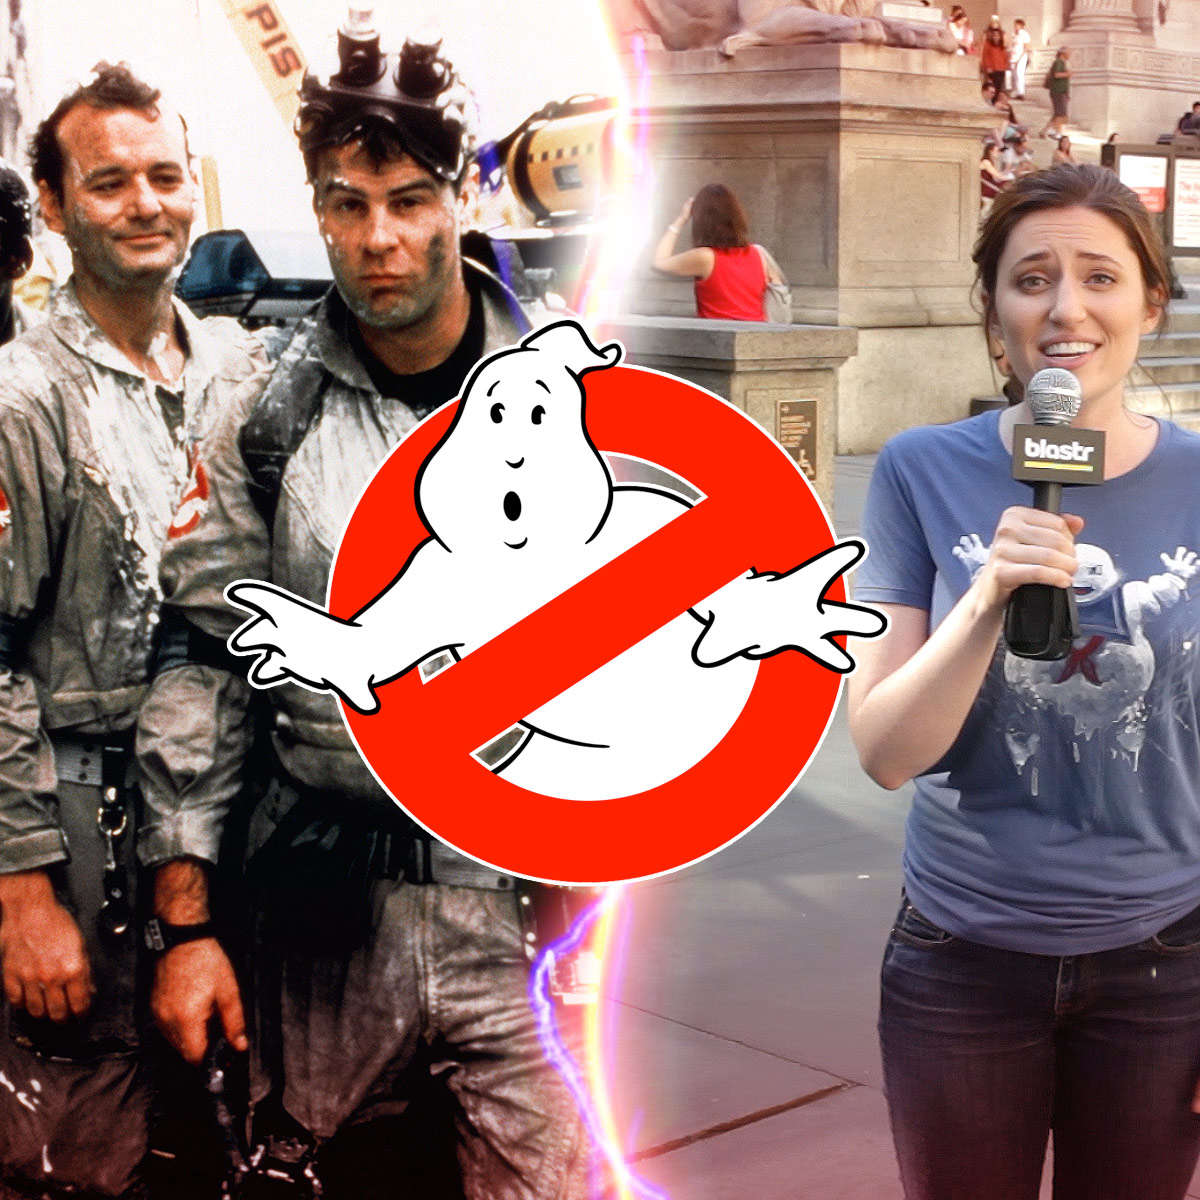 GhostbustersTriviaInterview_hero_1920x1200_1.jpg